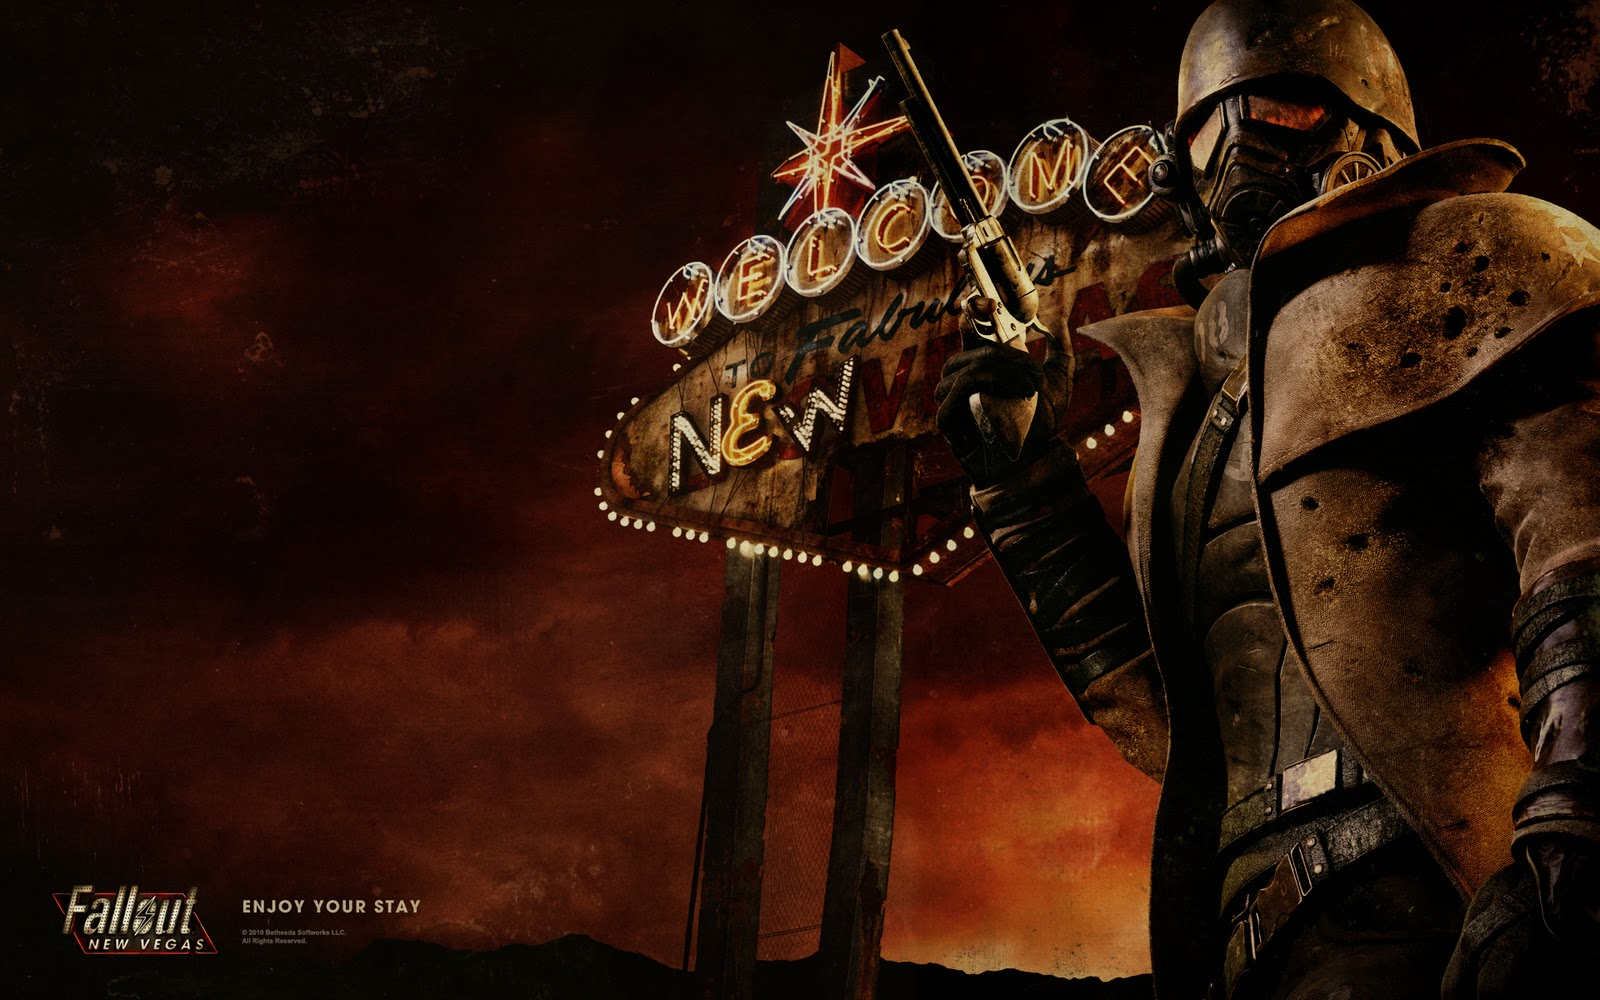 fallout nv wallpaper - photo #5